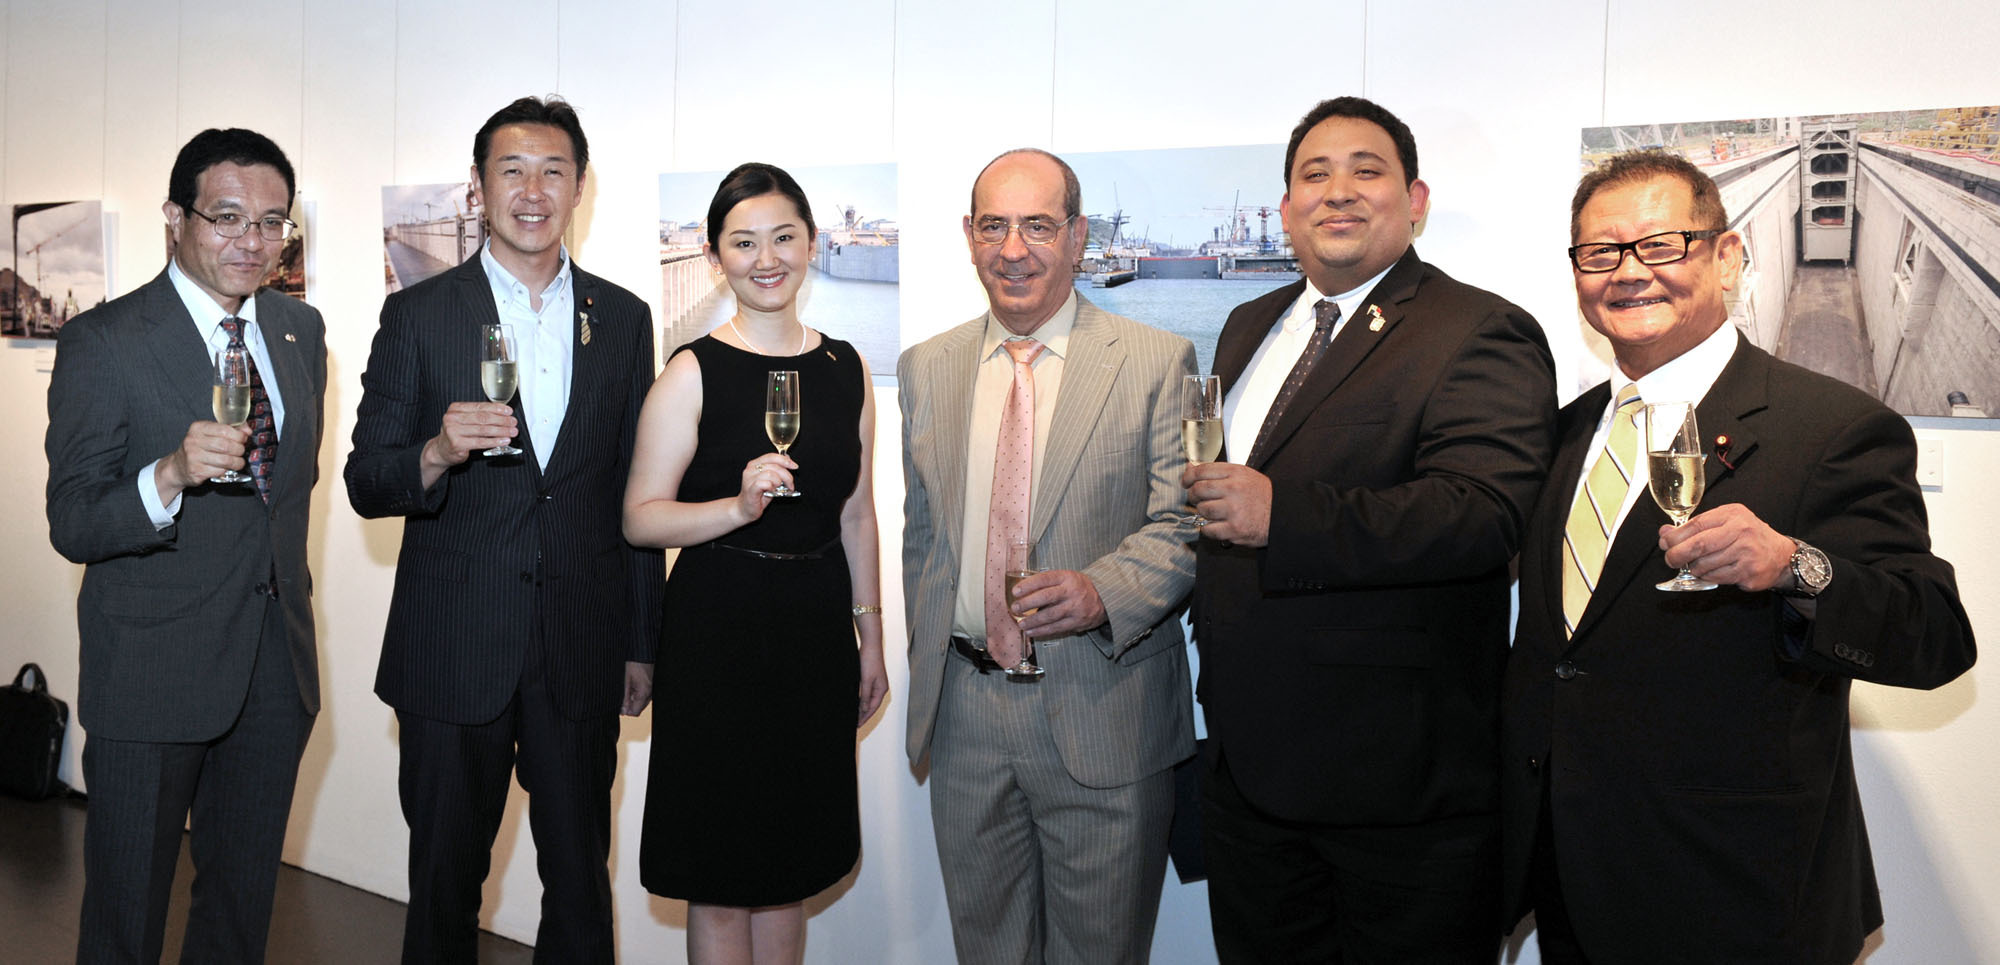 "(from left) Maritime Bureau of Ministry of Land, Infrastructure, Transport and Tourism Director-General Ichiro Hao; Parliamentary Vice-Minister for Foreign Affairs Hitoshi Kikawada; Ayana Hatada, wife of the Panama ambassador; Instituto Cervantes Tokyo Director Antonio Gil de Carrasco; Charge d'Affairs a.i. of Panama David De Leon; and House of Representatives member Tsuneo Akaeda prepare to toast at the opening of the ""Panama Canal: Expanding World Trade to the World'' photo exhibition, which runs through July 5, at Instituto Cervantes Tokyo on June 28. 